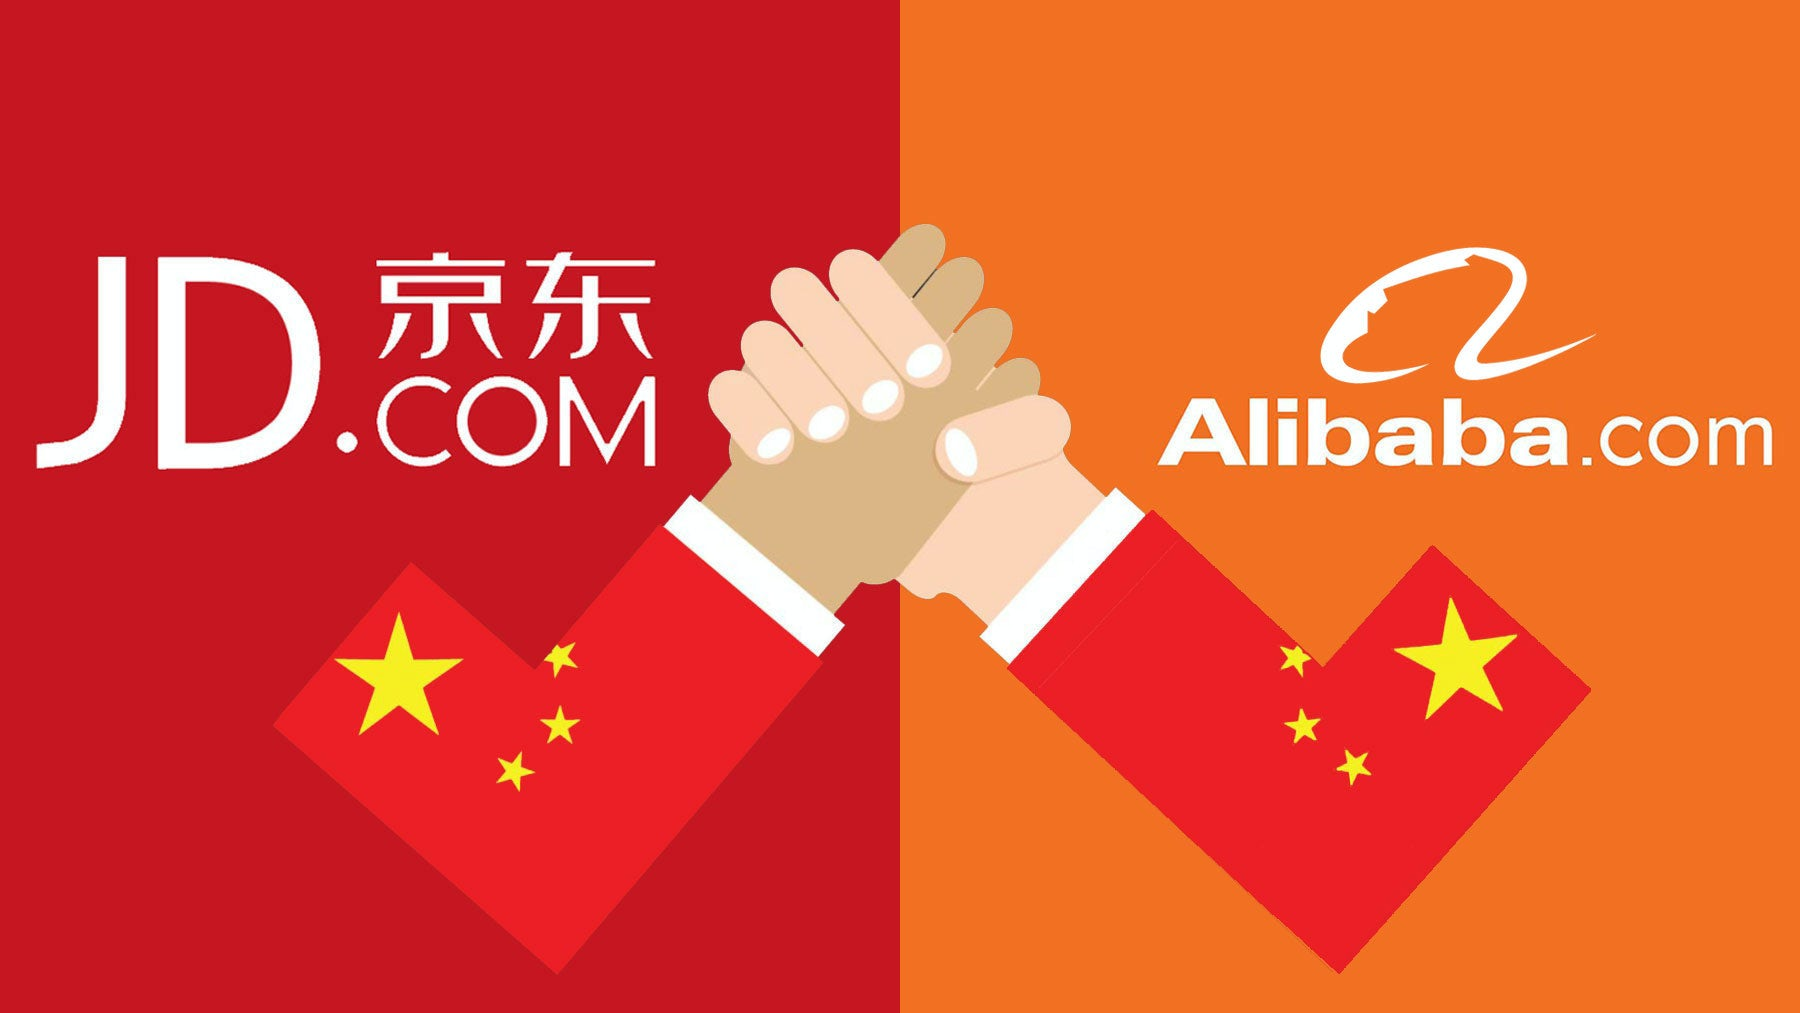 Alibaba And Jd Com Battle For Luxury Goods Market News Analysis Bof Alibaba has the presence in the. jd com battle for luxury goods market